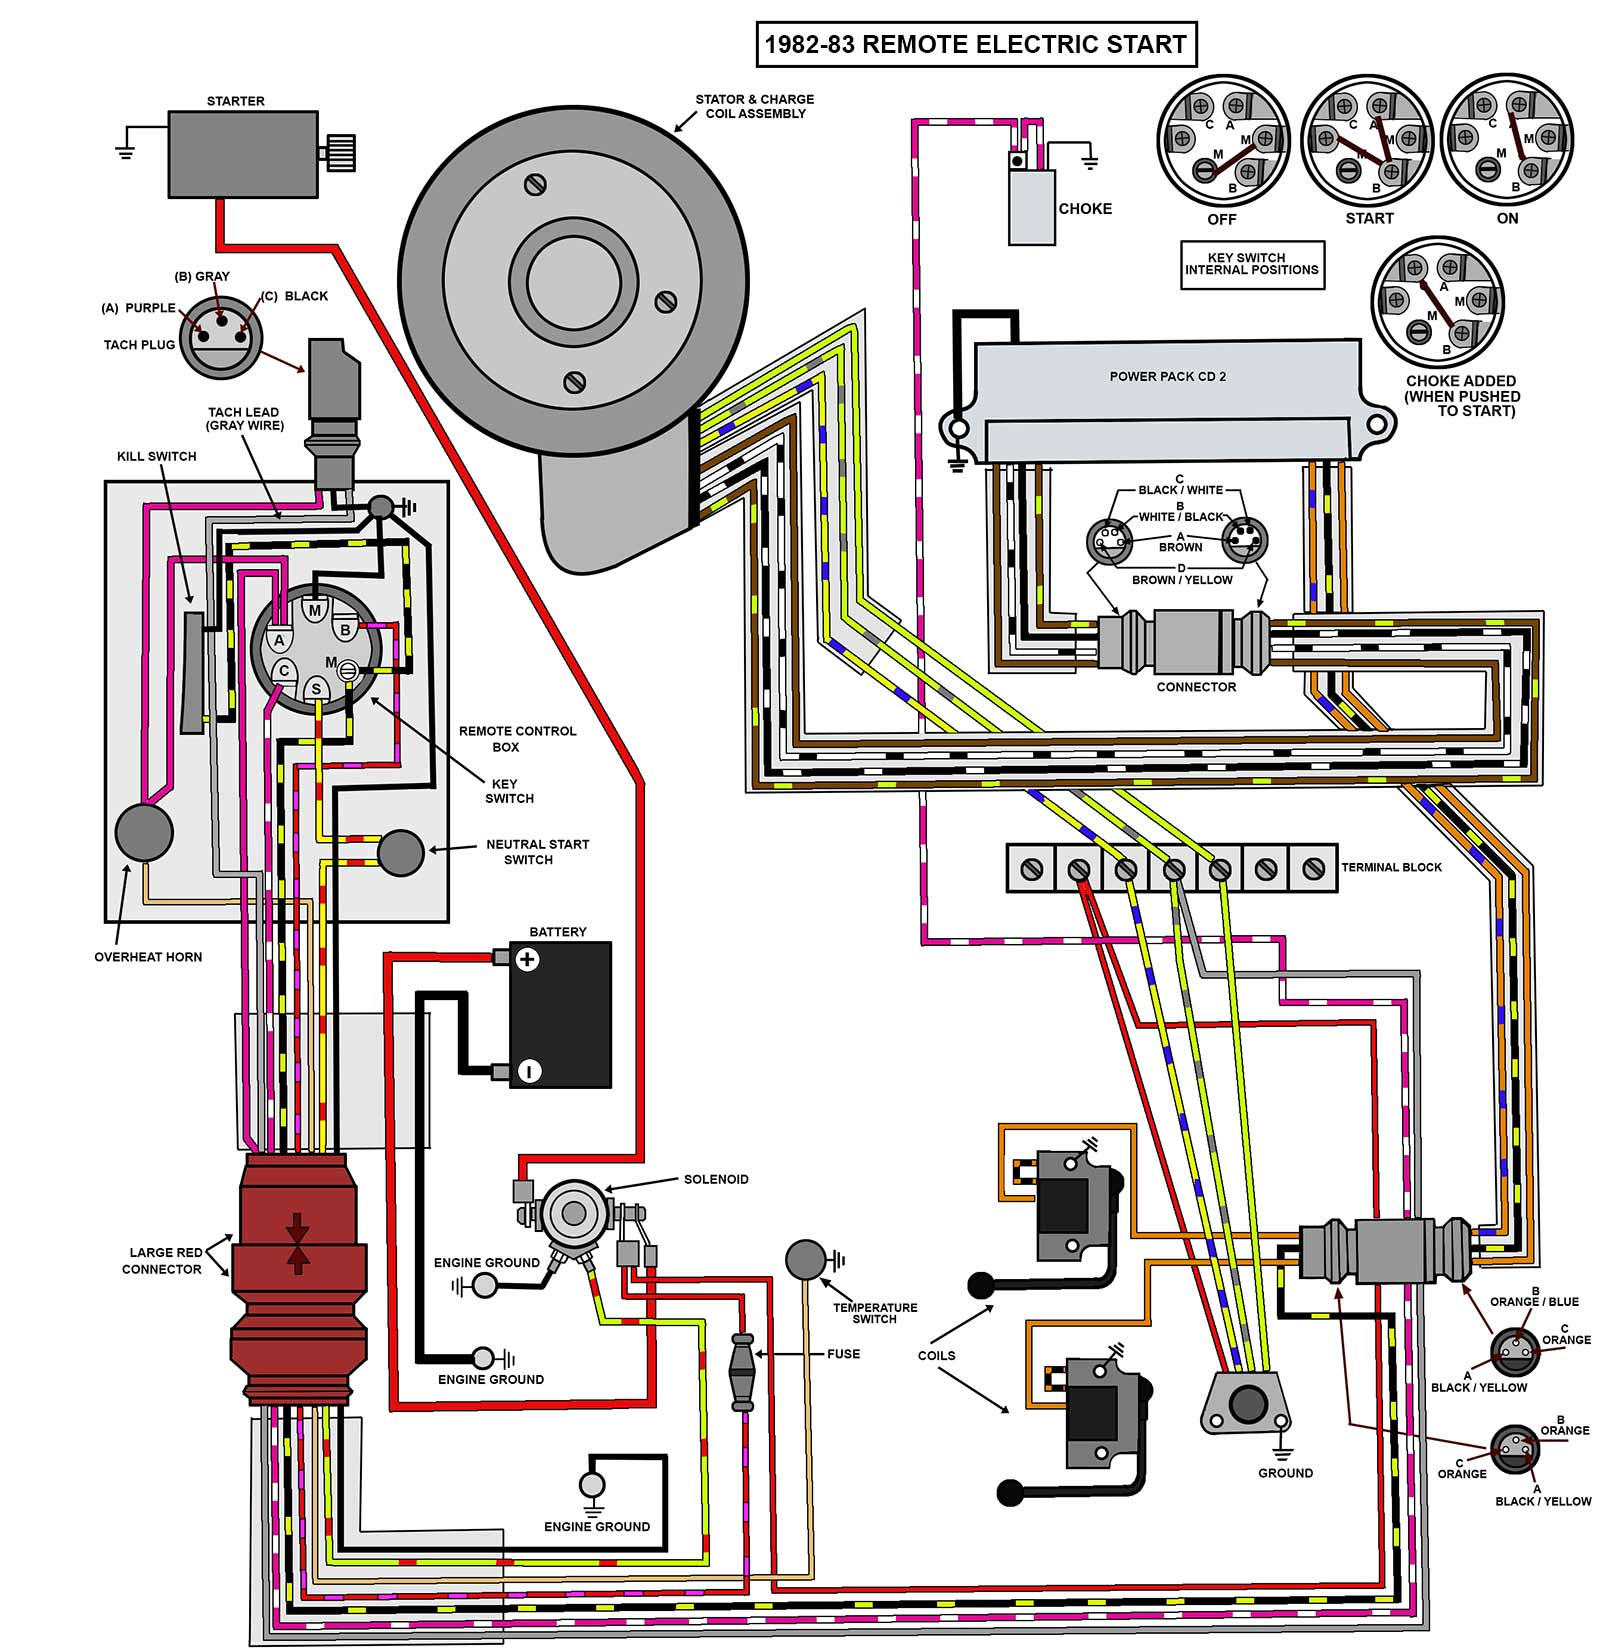 Honda Outboard Lower Unit Parts Diagram Motorwallpapers Org 1979 Evinrude  Wiring Diagram